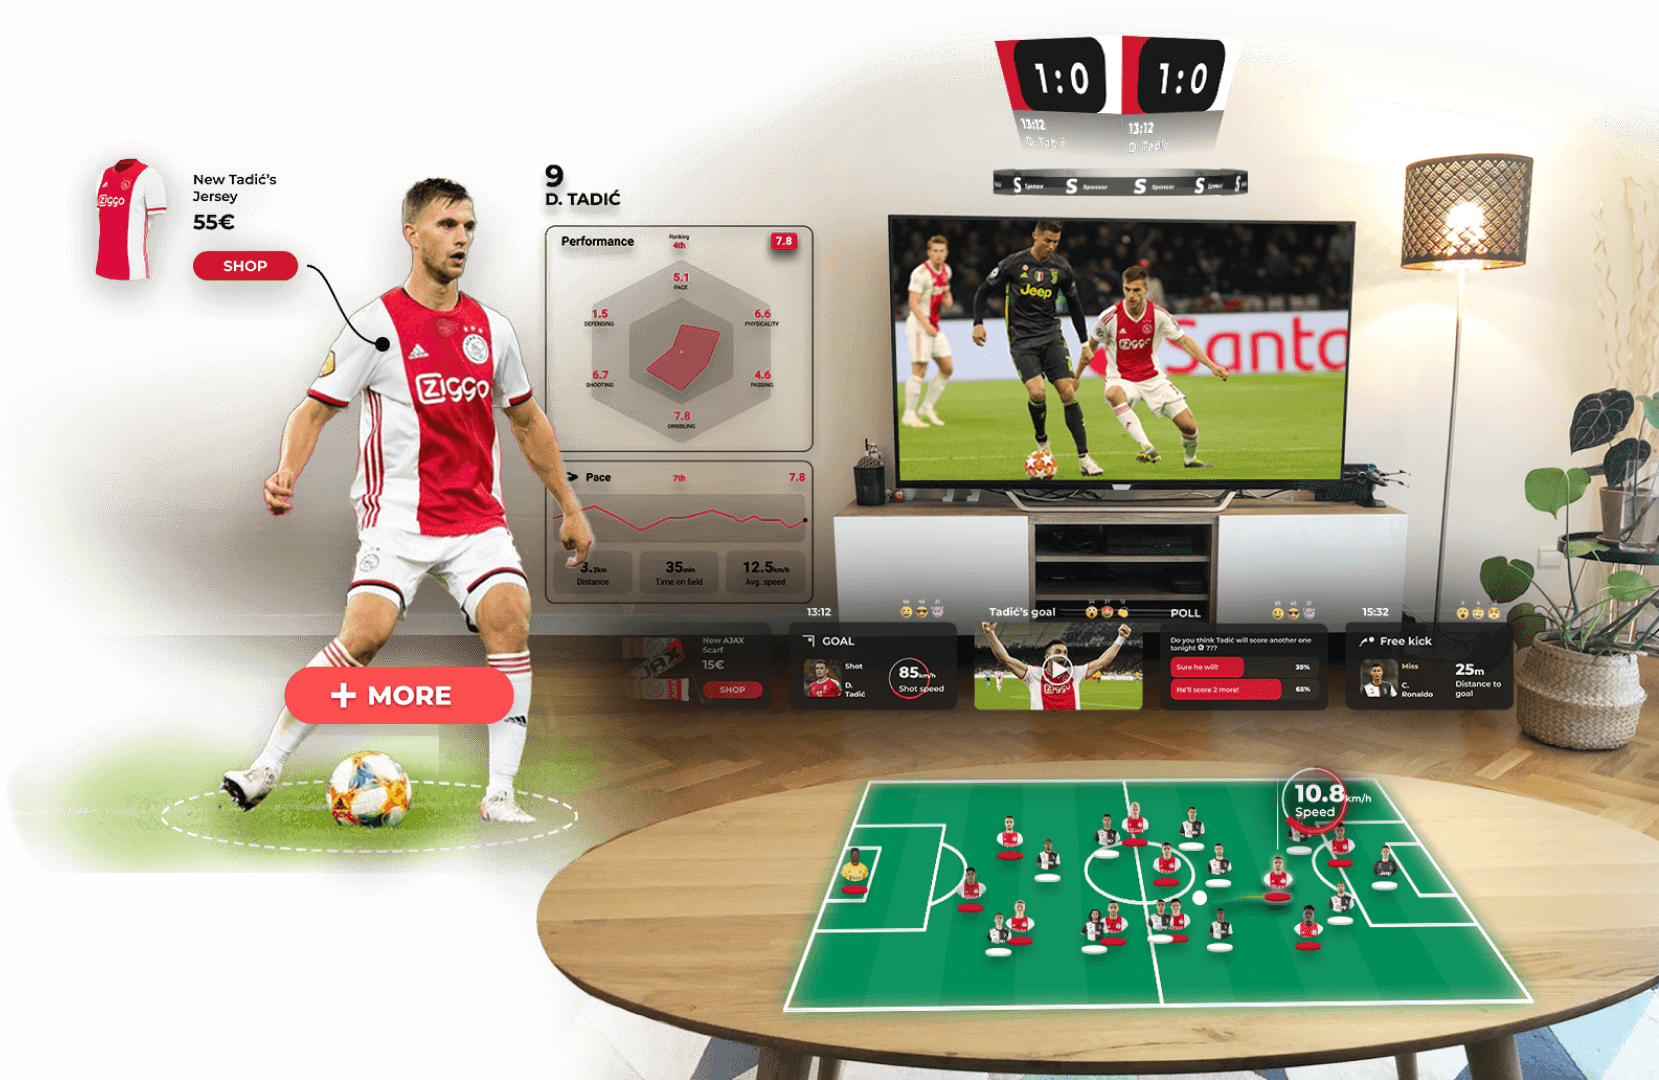 AR fan experience football TV broadcast